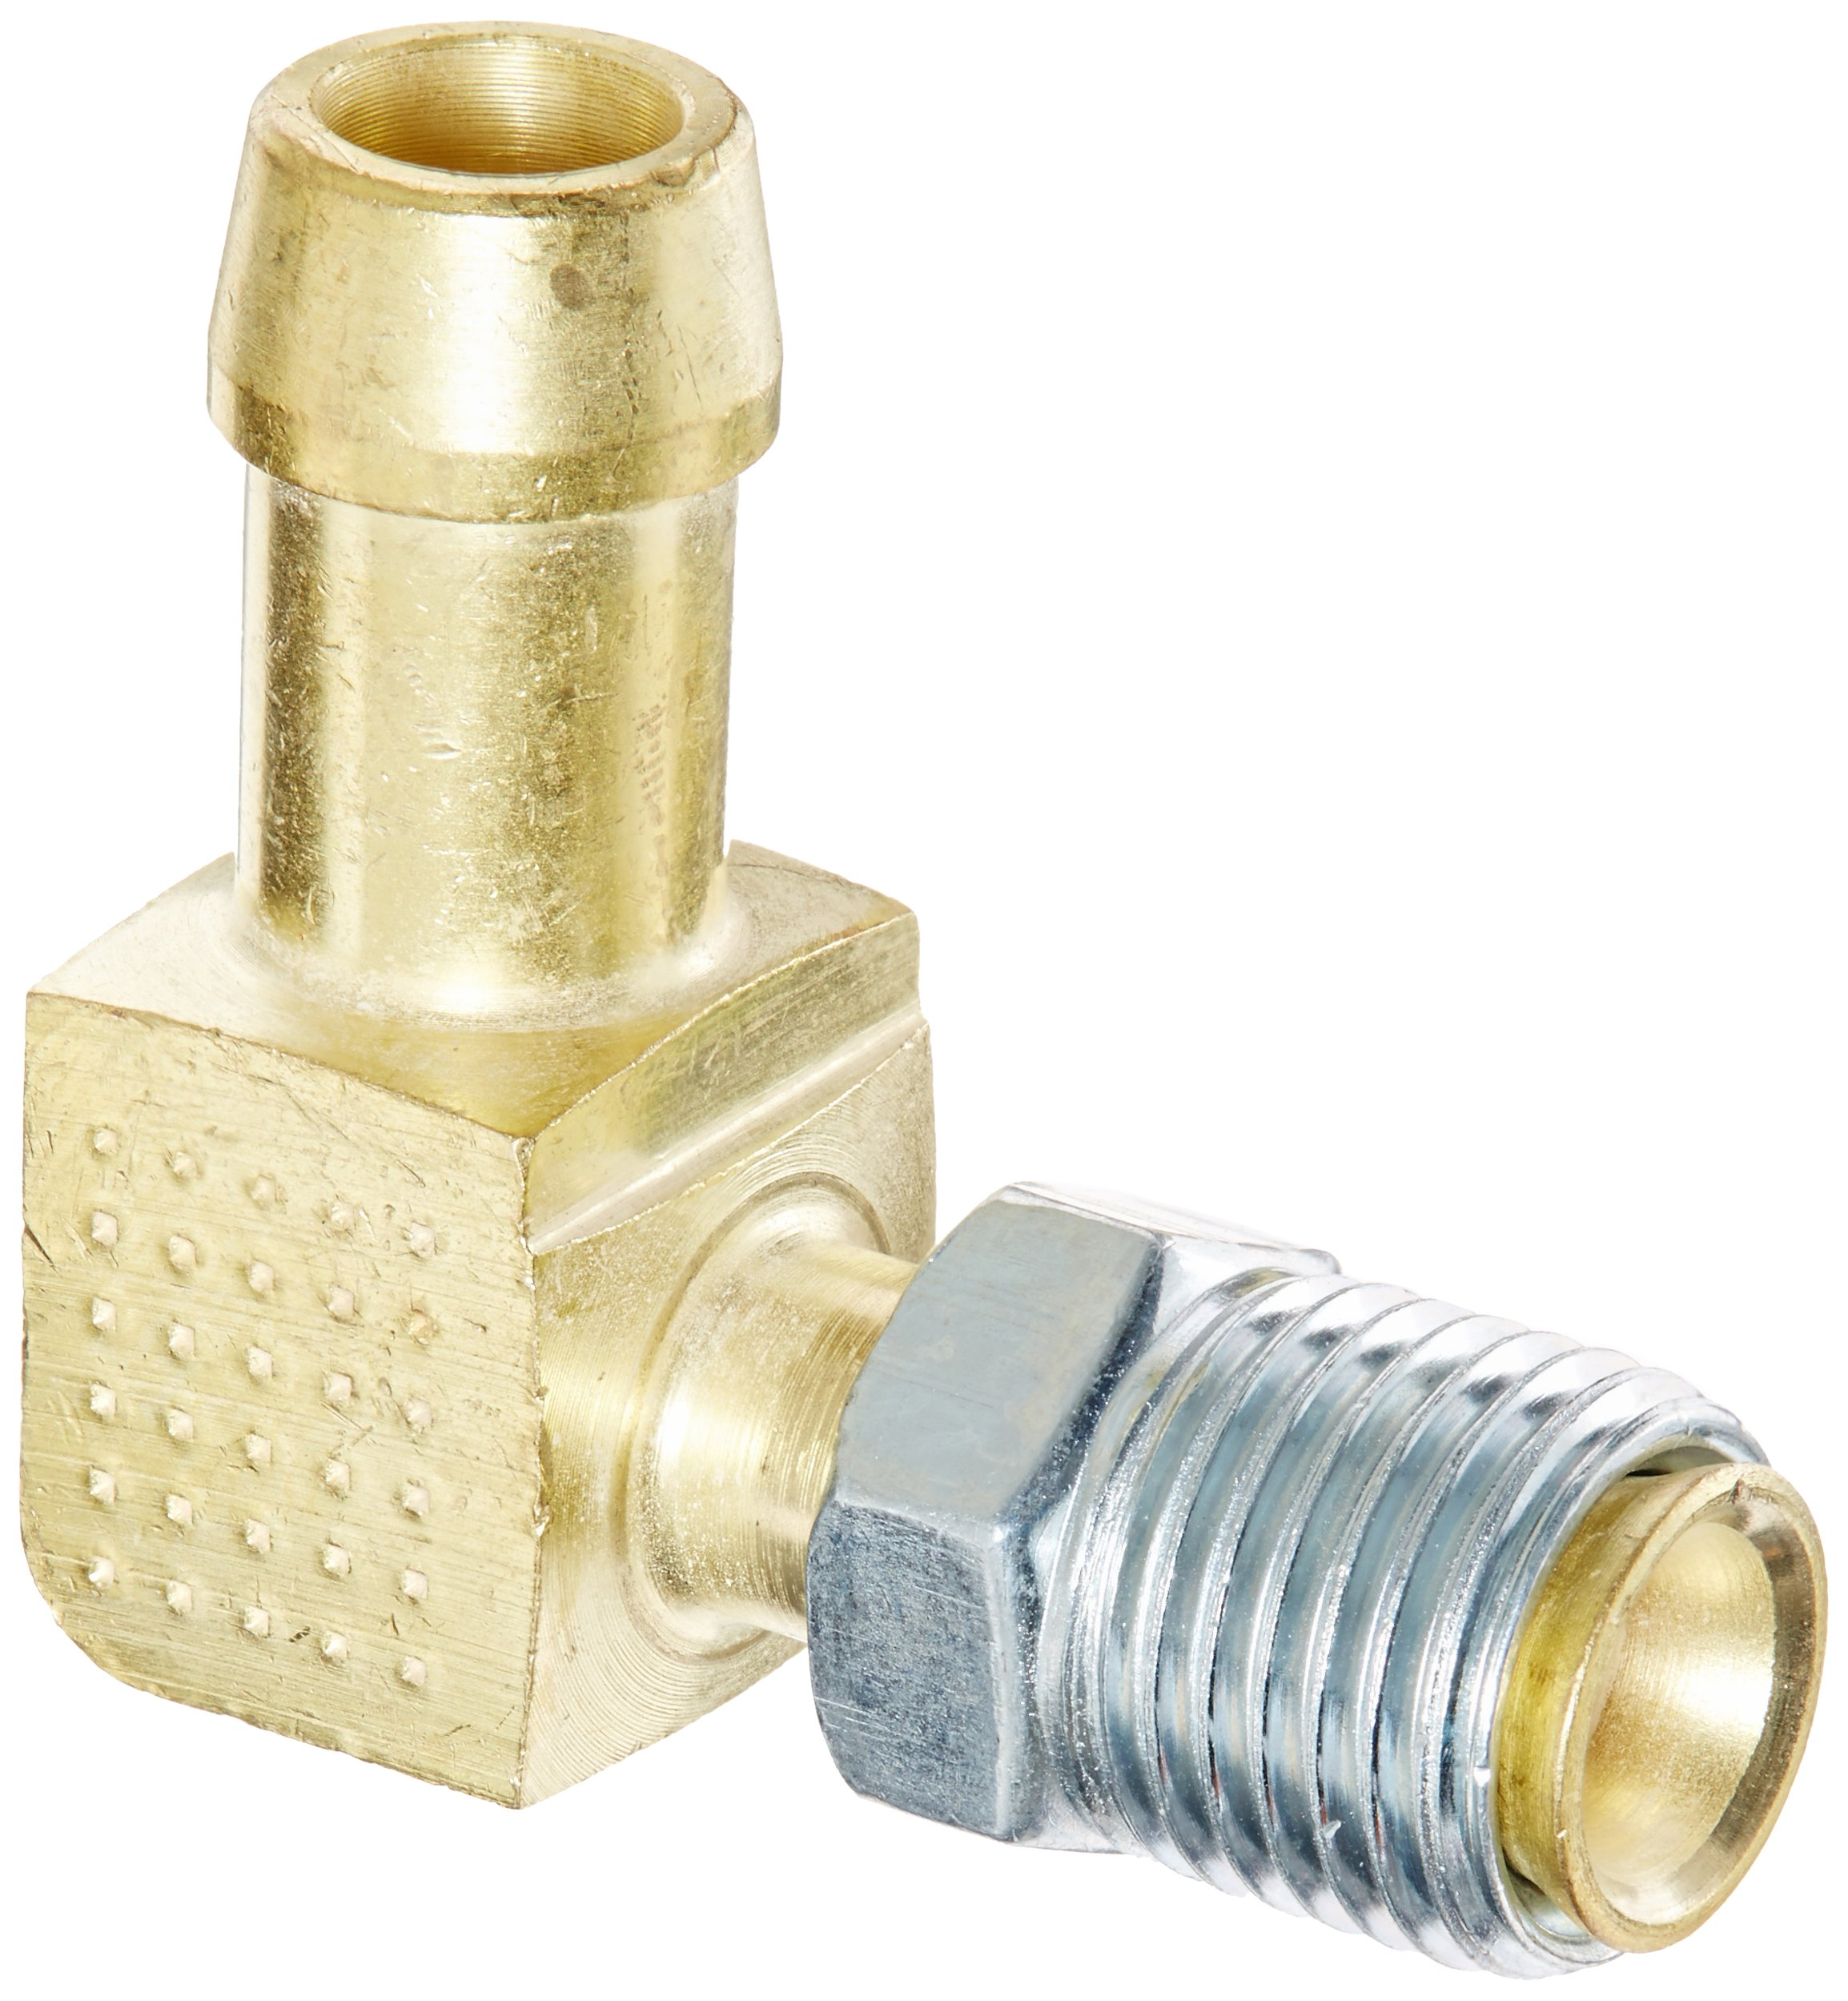 Edelmann 822560 Brass 5/16'' Inverted Flare X 3/8'' Hose 90 Degree Elbow Fitting by Edelmann